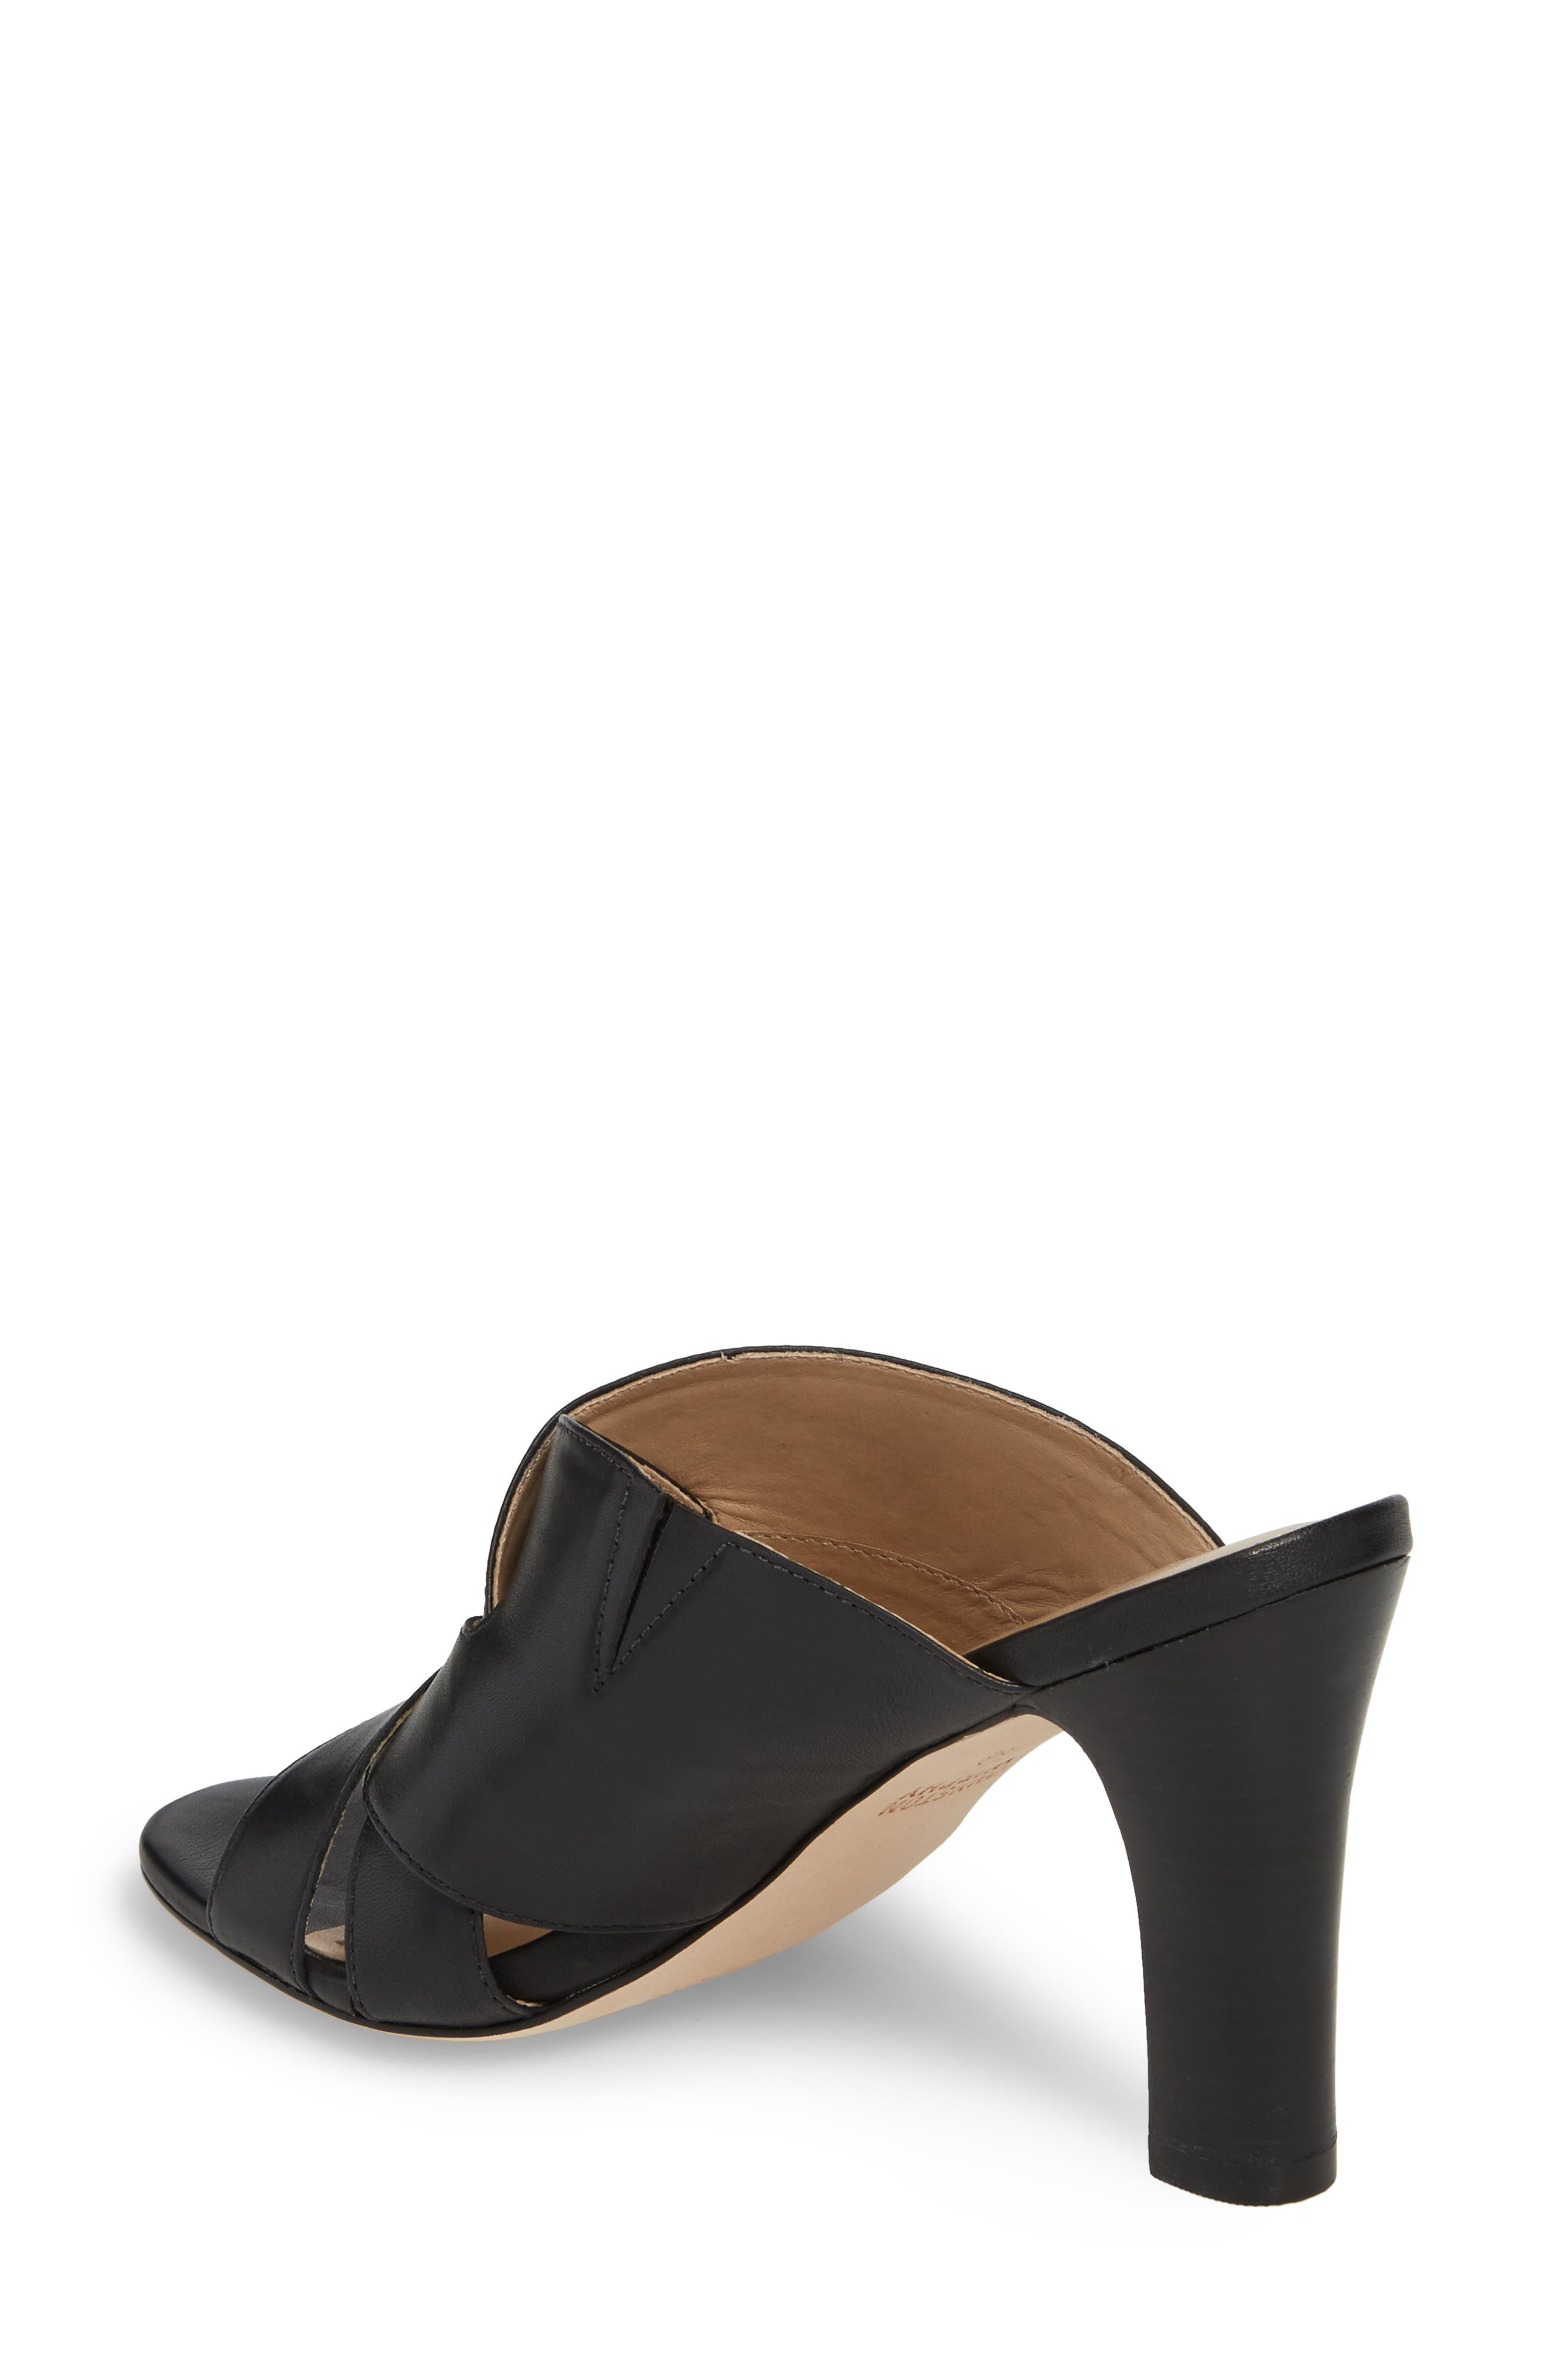 Carrie Mule Sandal,                             Alternate thumbnail 2, color,                             BLACK LEATHER